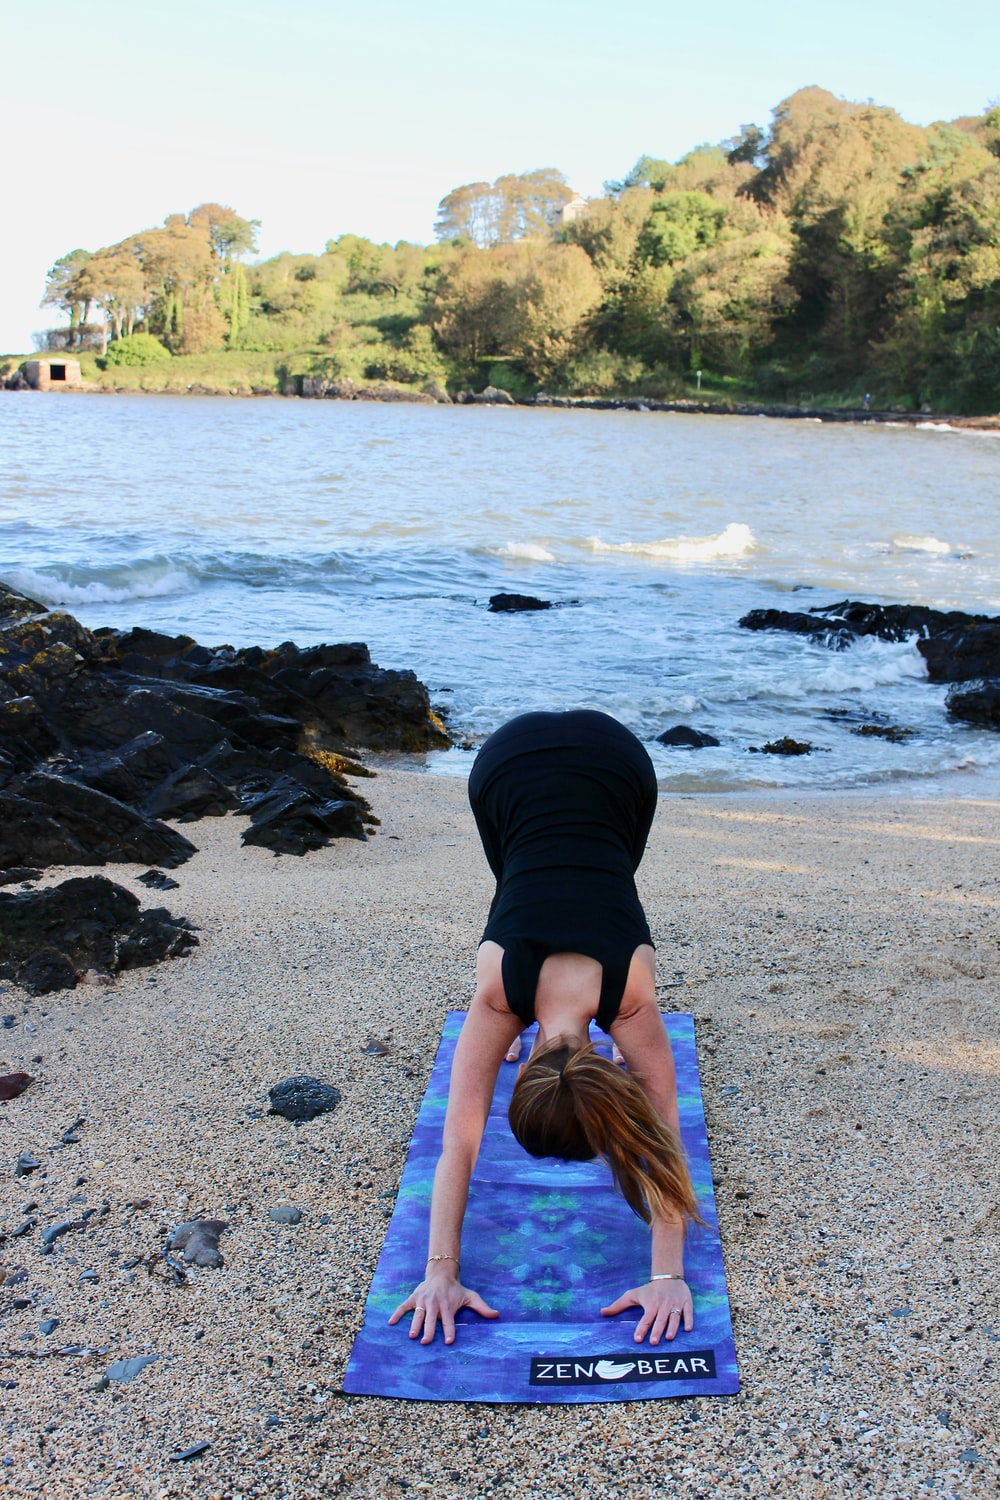 woman in black outfit doing yoga beside body of water